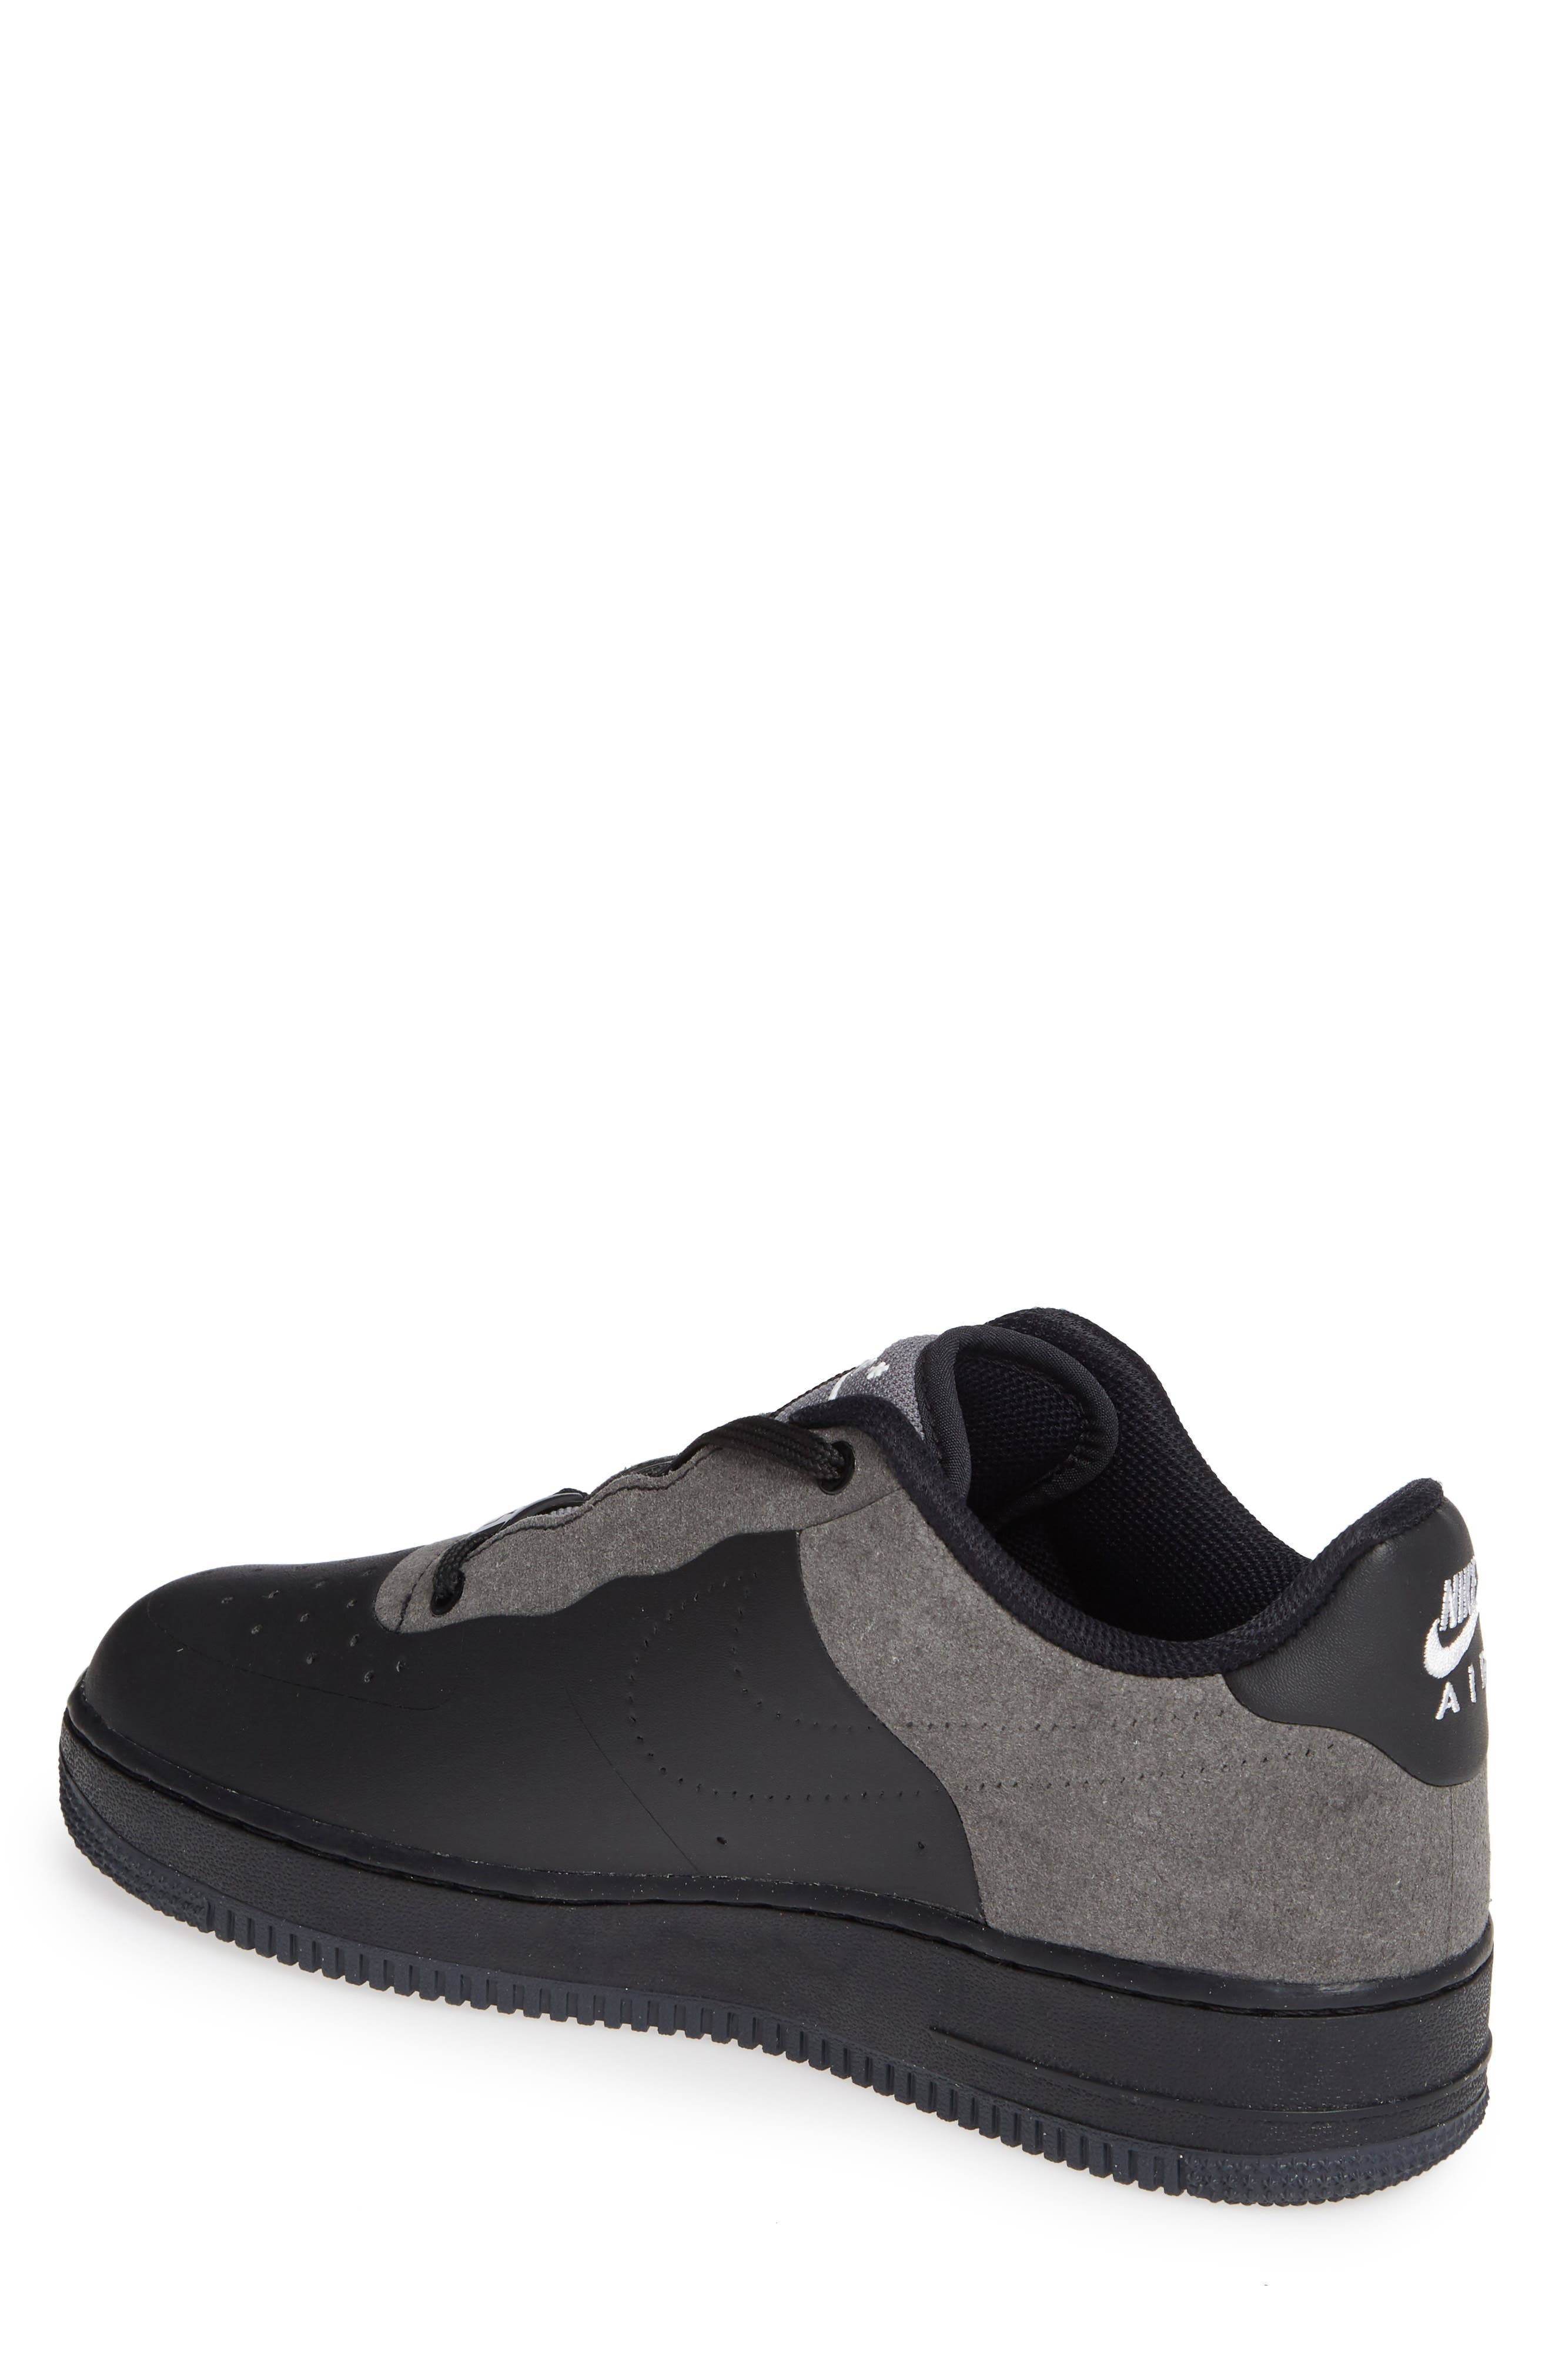 x A-COLD-WALL Air Force 1 '07 Sneaker,                             Alternate thumbnail 2, color,                             BLACK/ WHITE/ DARK GREY